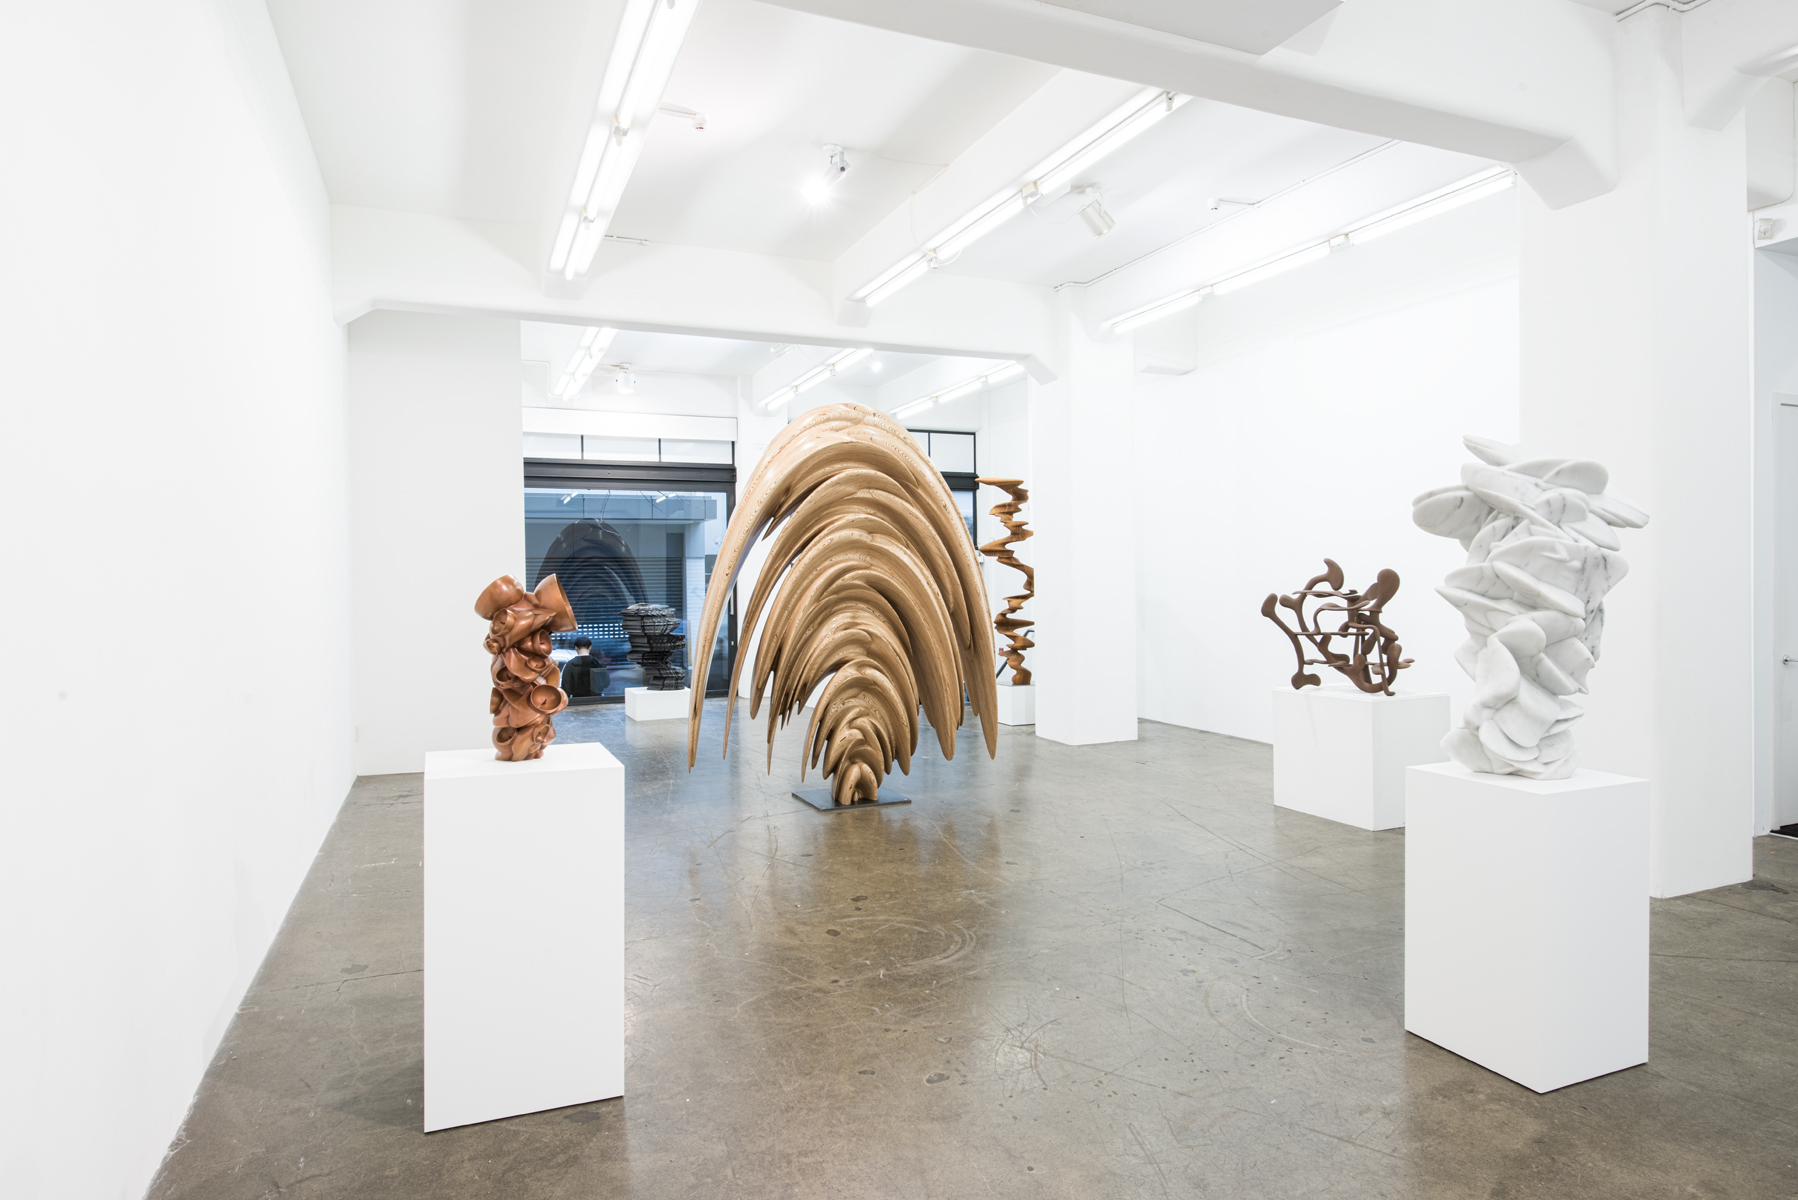 Tony Cragg on Eye Contact